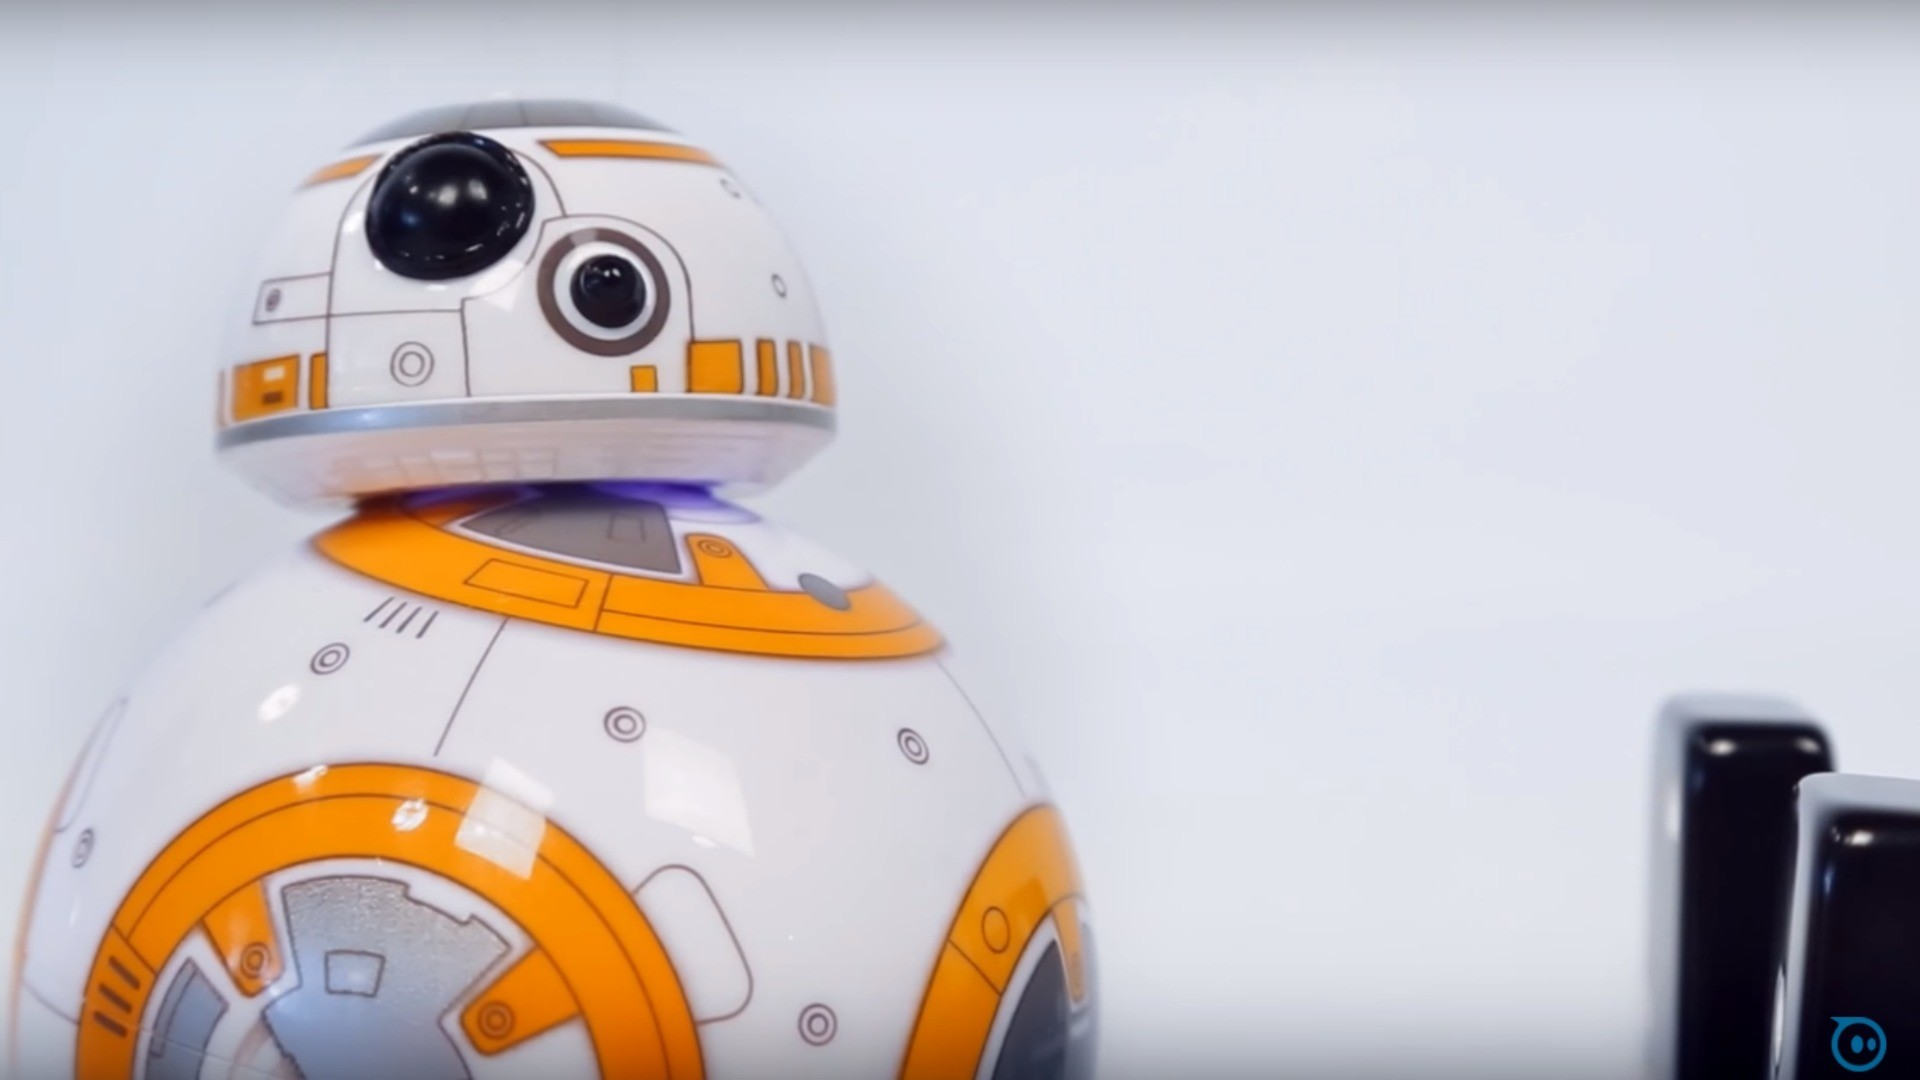 Star Wars: The Force Awakens has produced the most incredible characters,  but none cuter